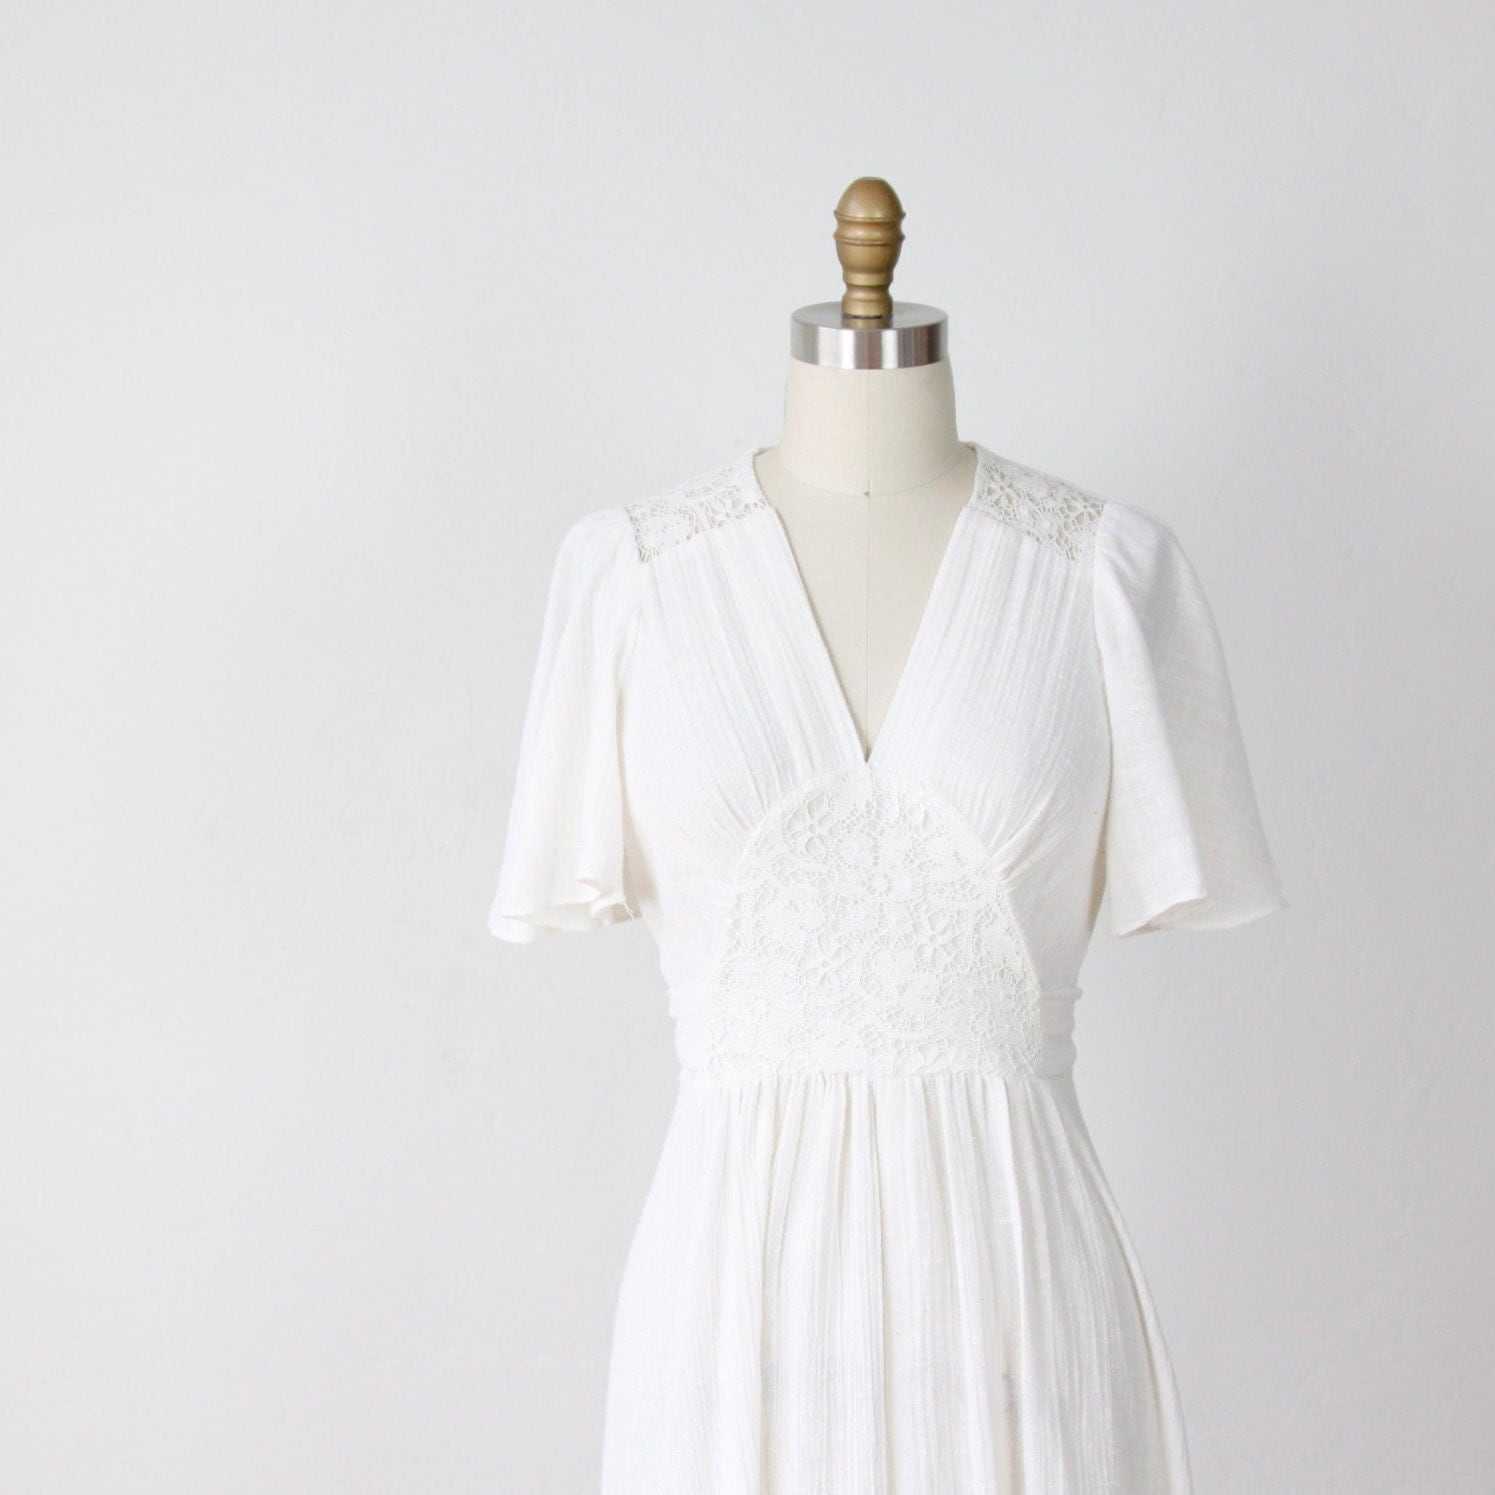 bohemian wedding dress white cotton gauze lace by salvagelife With gauze wedding dress